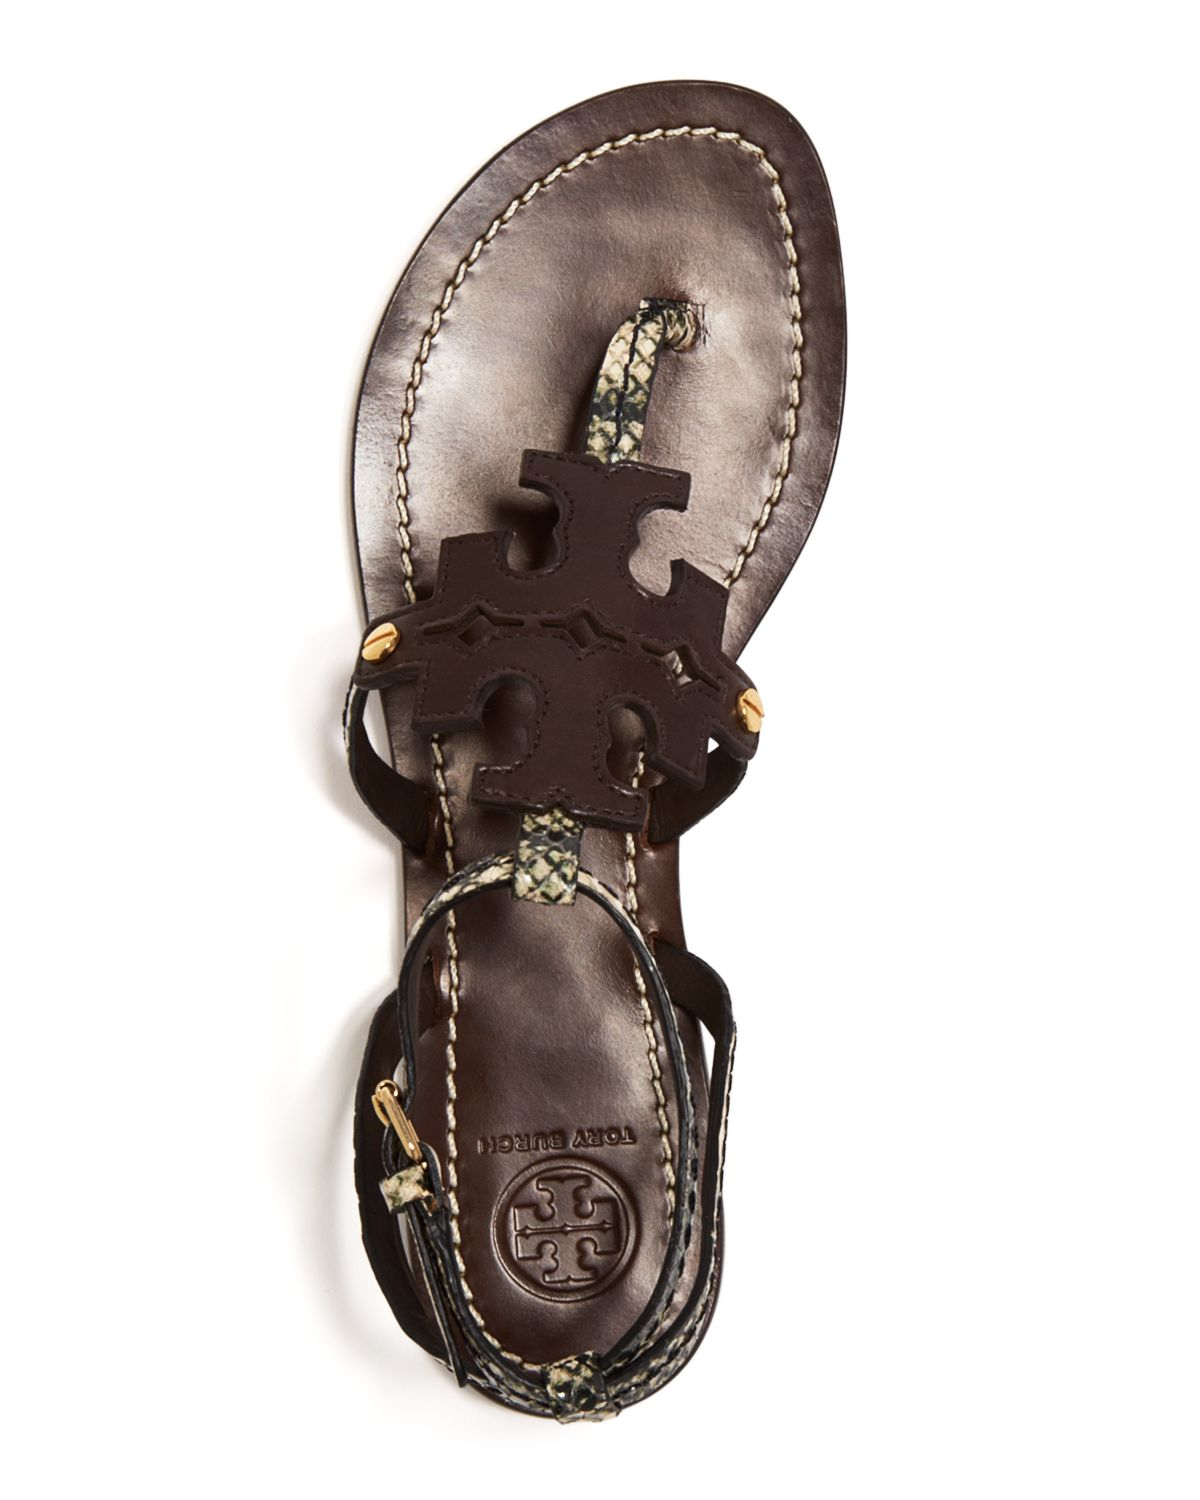 e39e3772c Lyst - Tory Burch Flat Thong Sandals - Chandler in Black